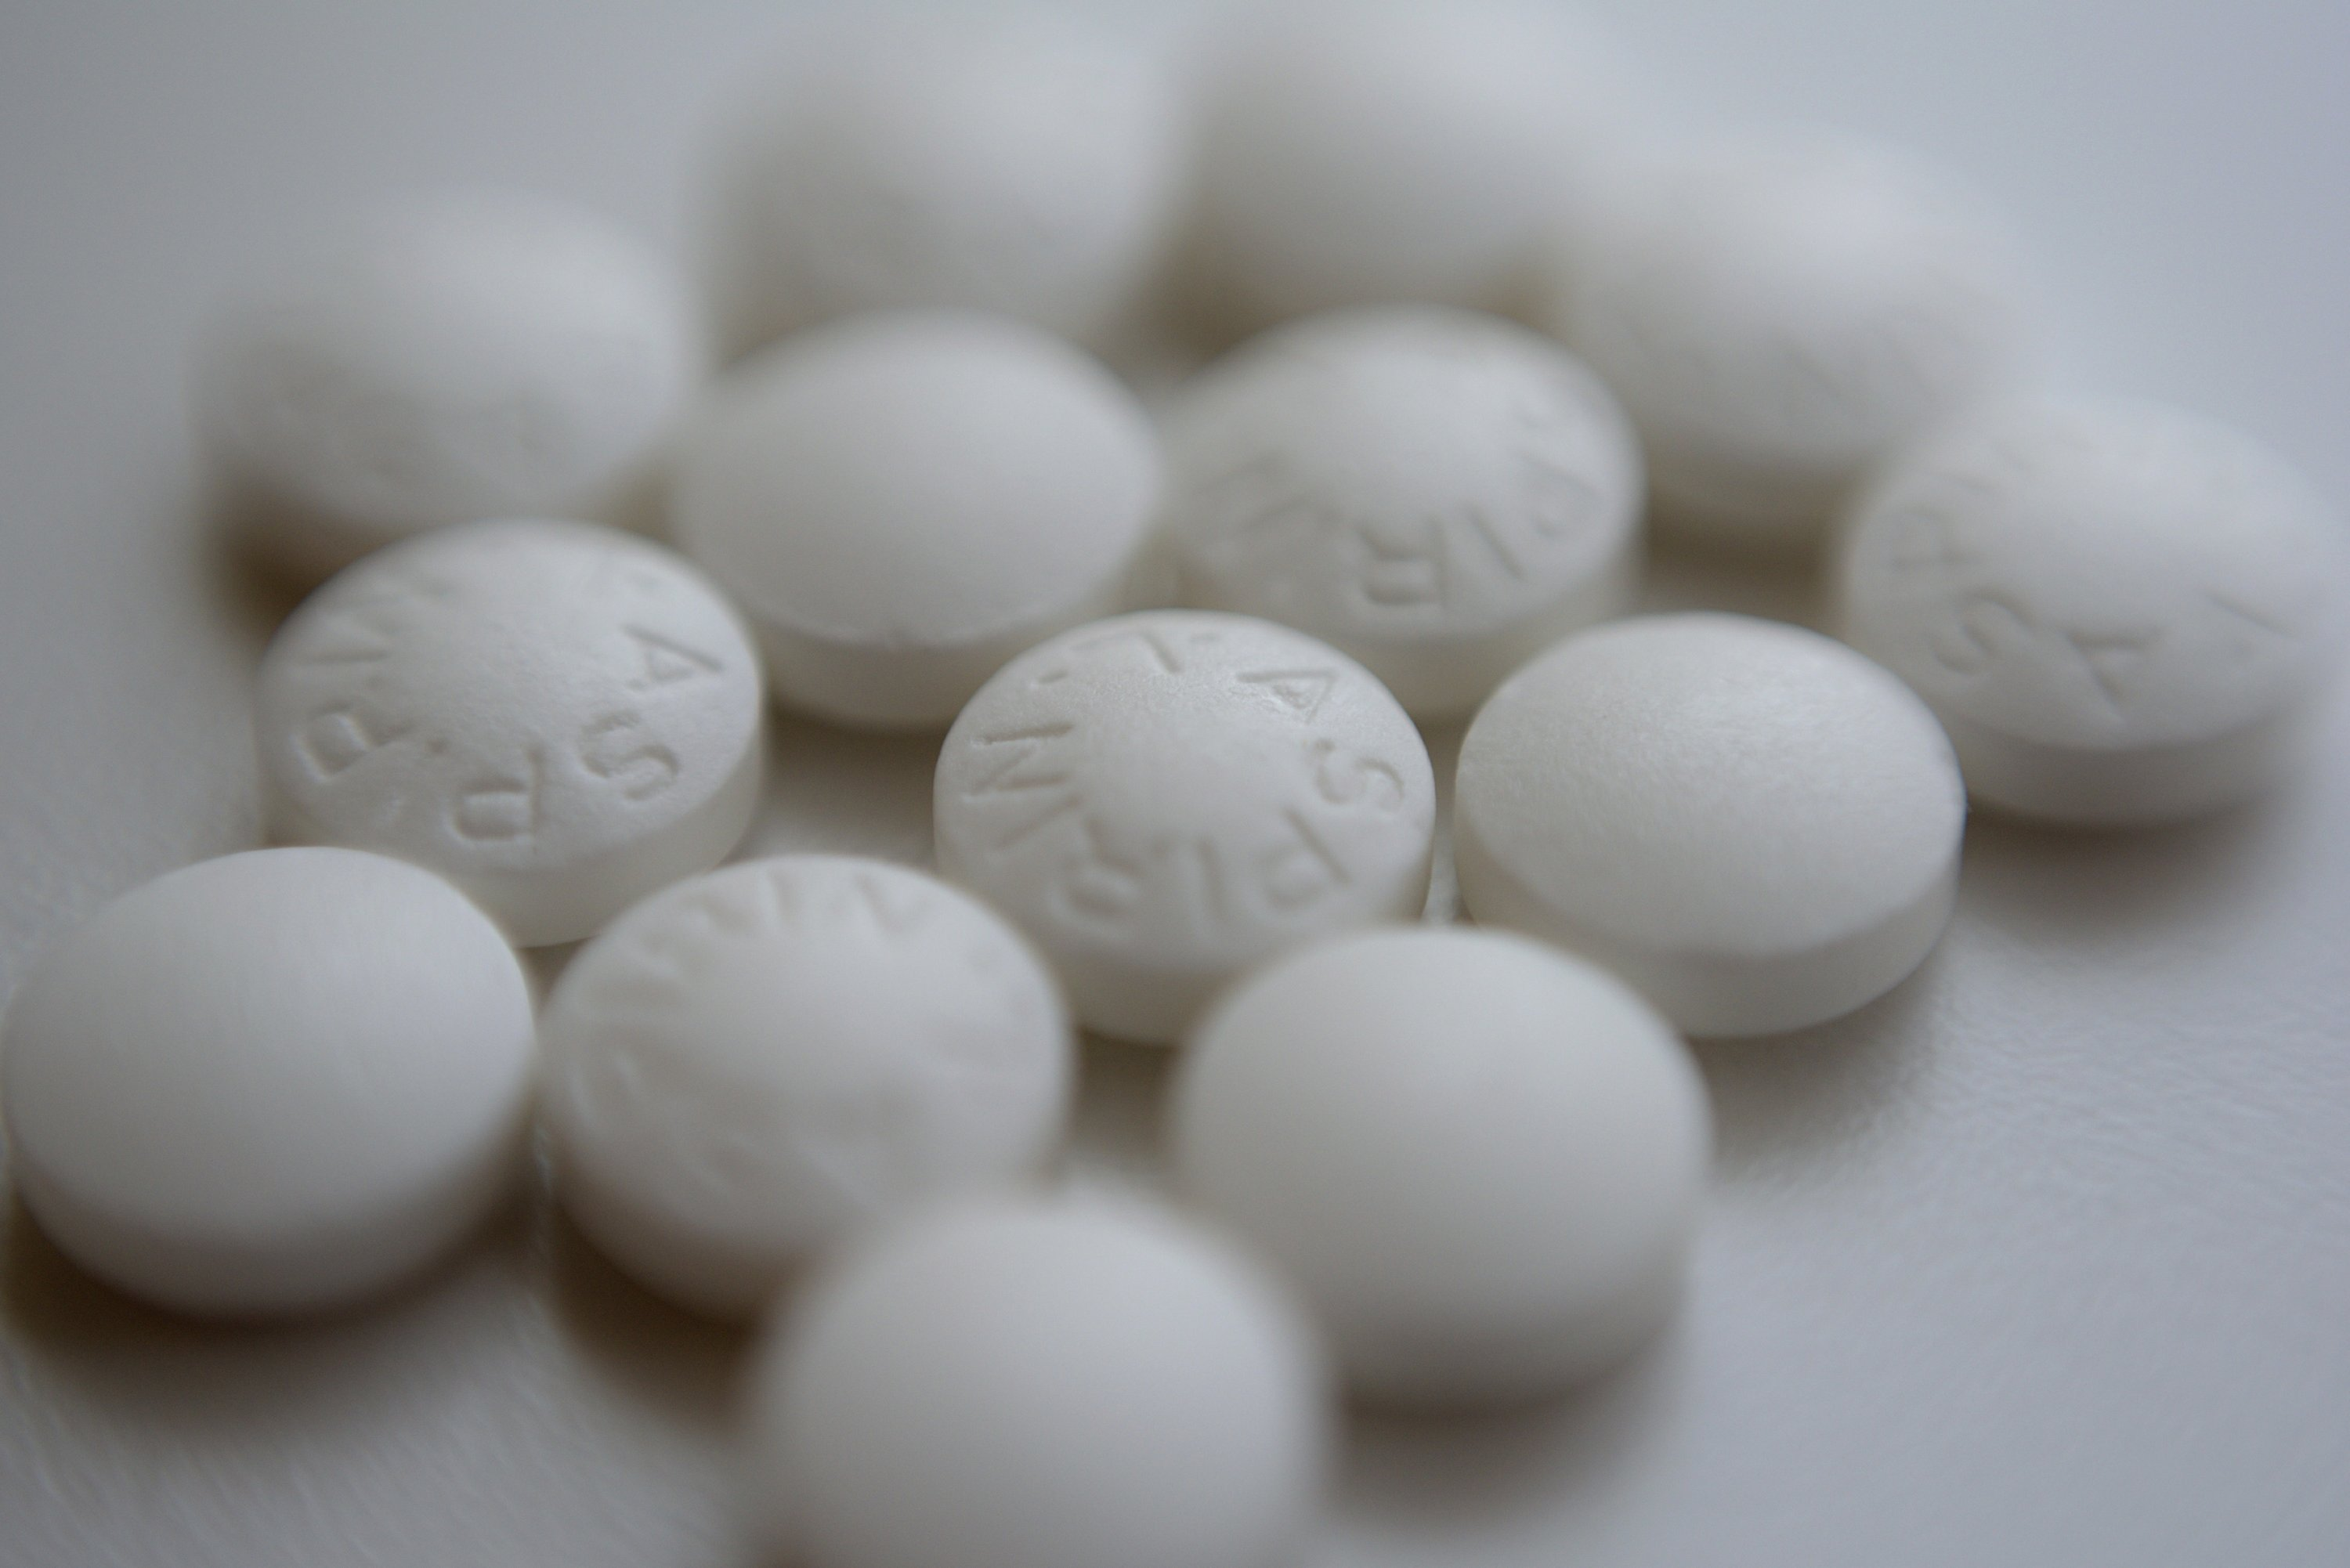 Millions should stop taking aspirin for heart health